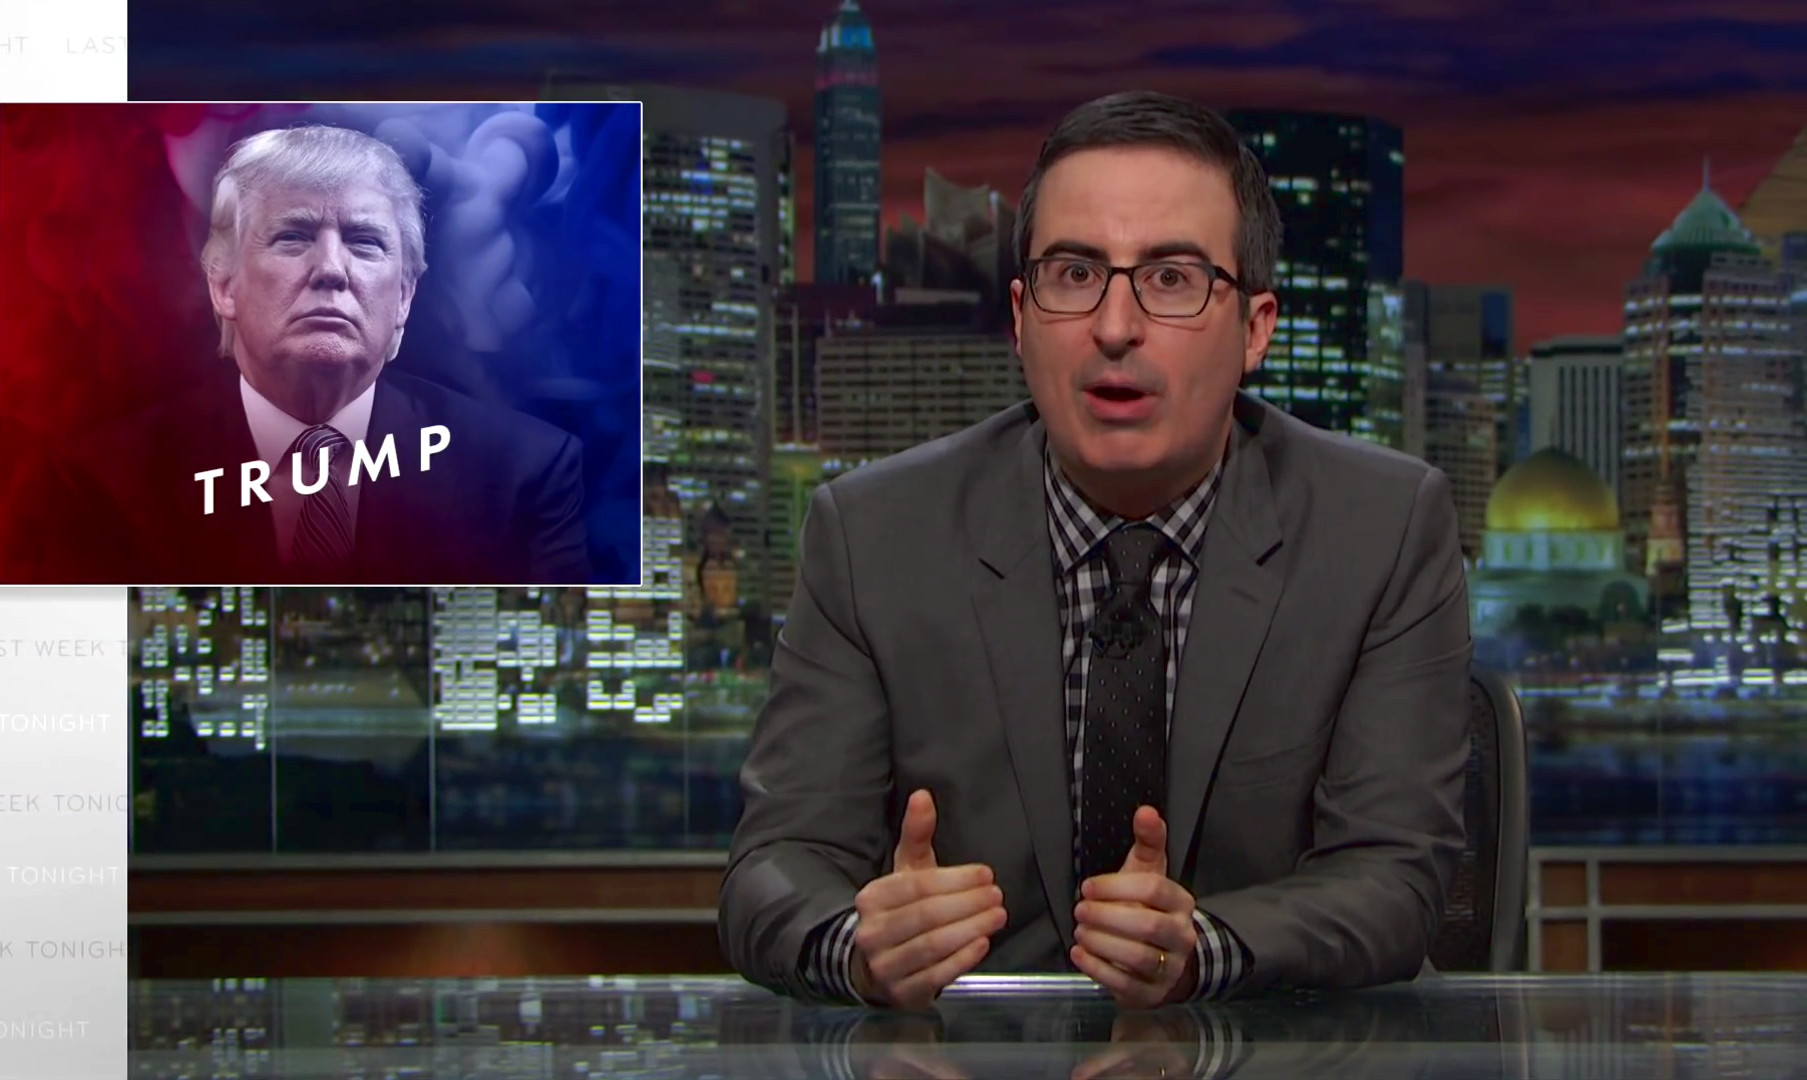 John Oliver on Donald Trump, 2016 (Video)